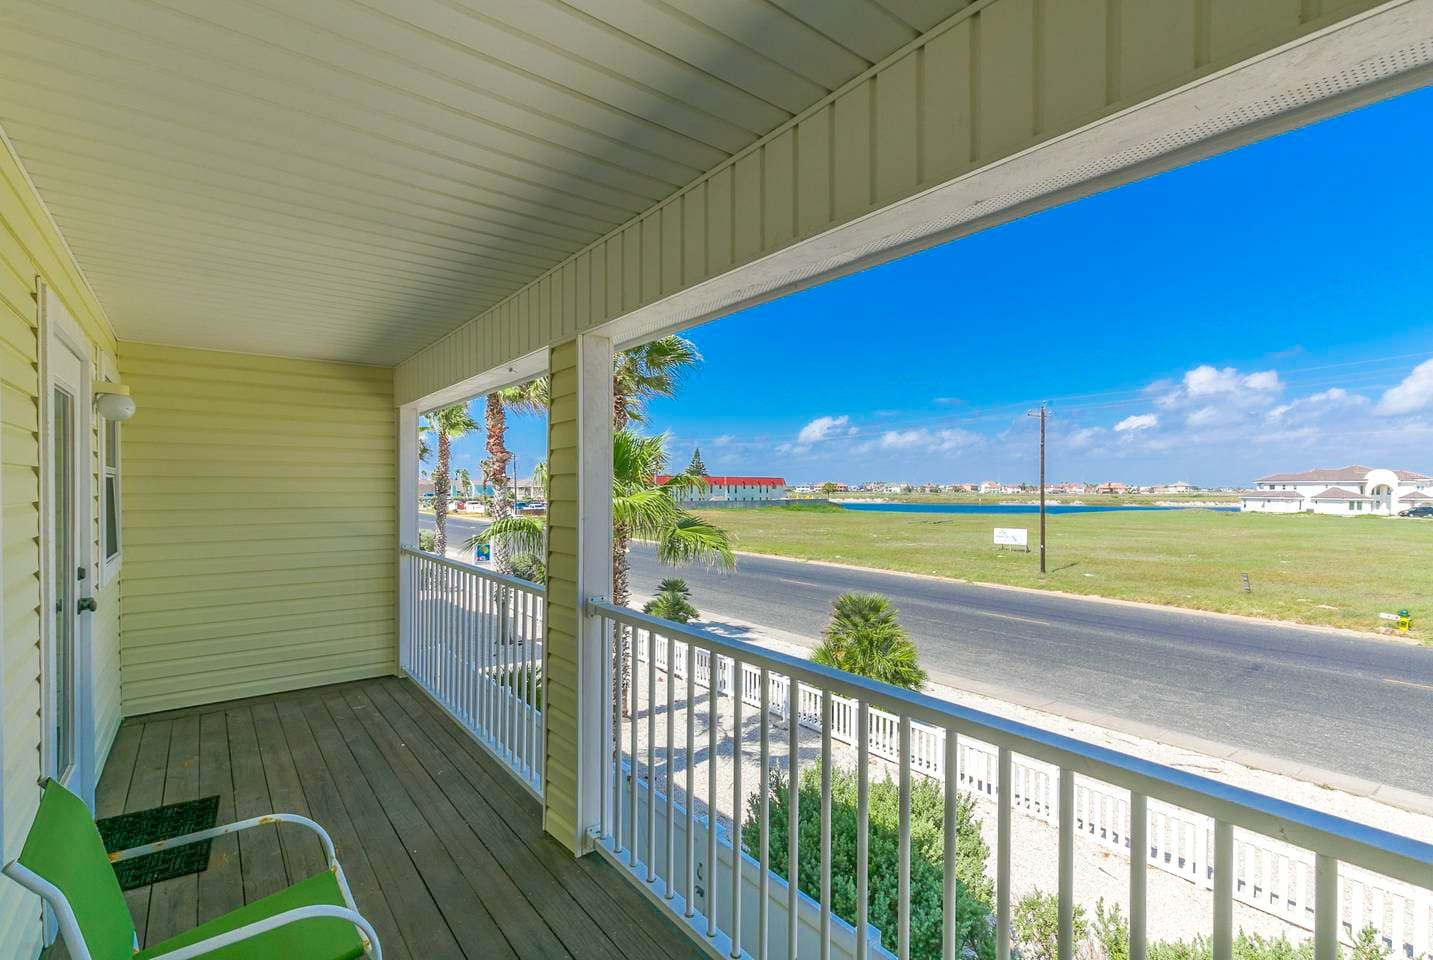 Welcome to Corpus Christi. Your rental property is professionally managed by TurnKey Vacation Rentals.